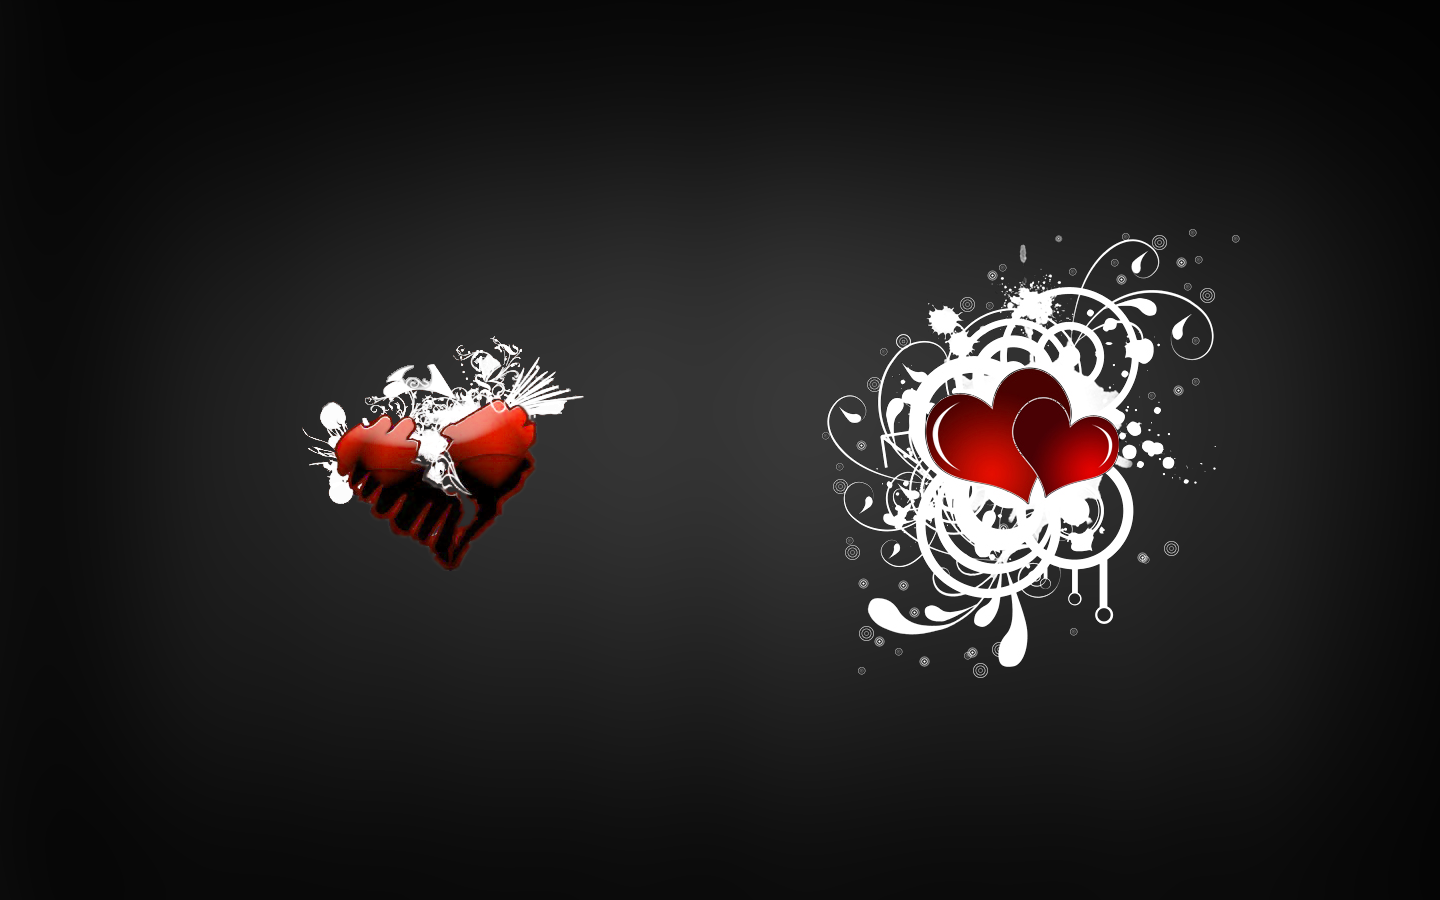 Love Wallpapers Broken Heart : 1440x900 Love & Broken Heart desktop Pc and Mac wallpaper